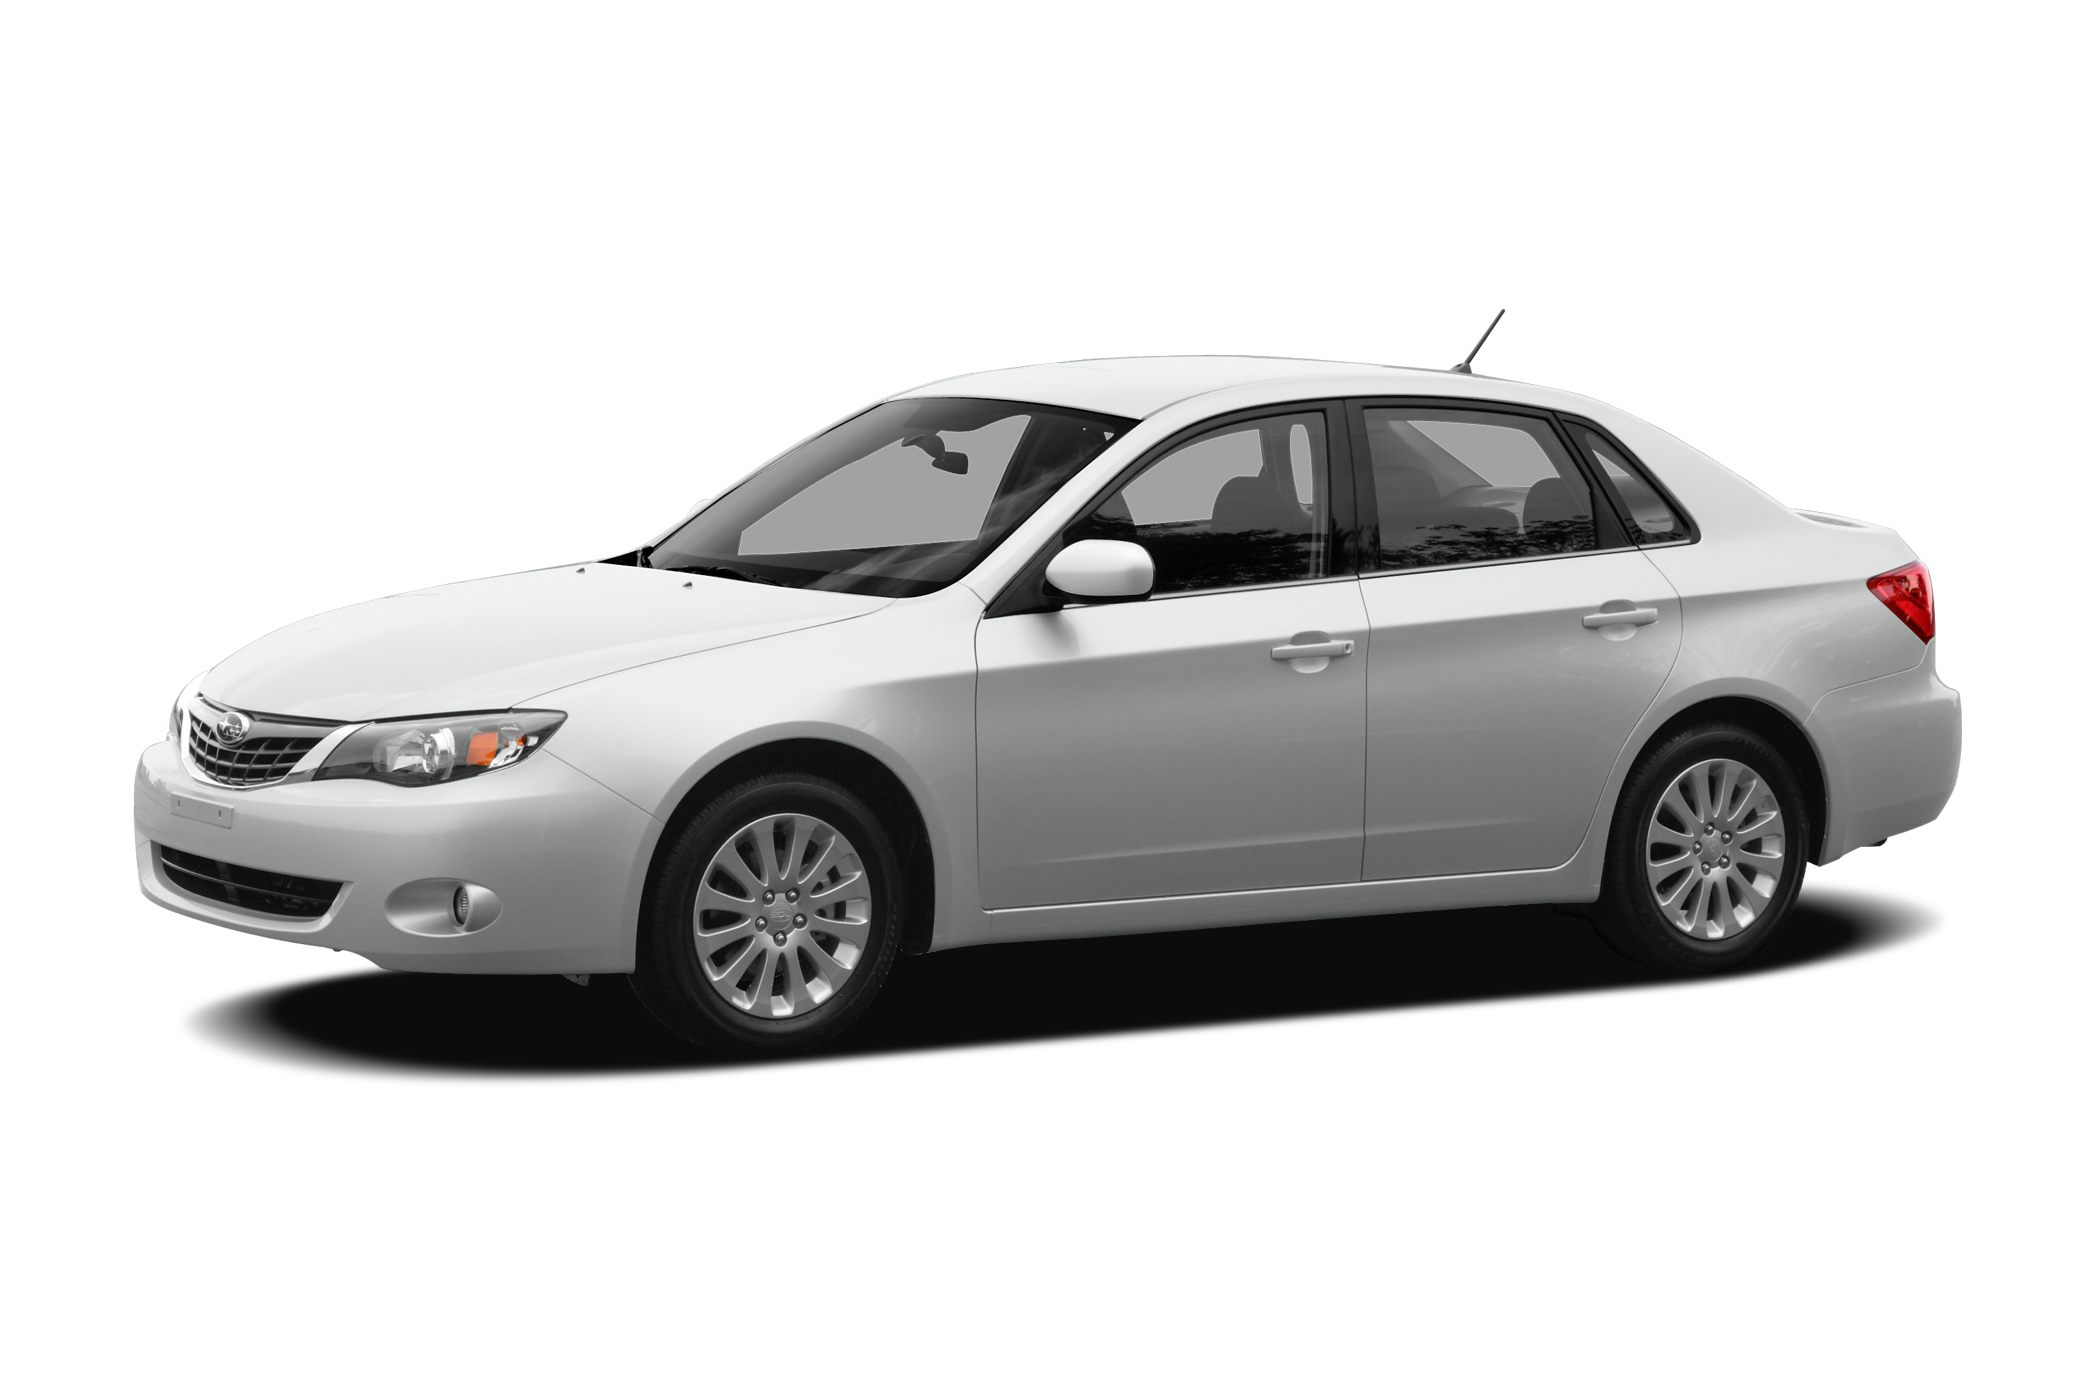 2010 Subaru Impreza 25i CARFAX 1-Owner ONLY 54038 Miles PRICE DROP FROM 12985 PRICED TO MOV